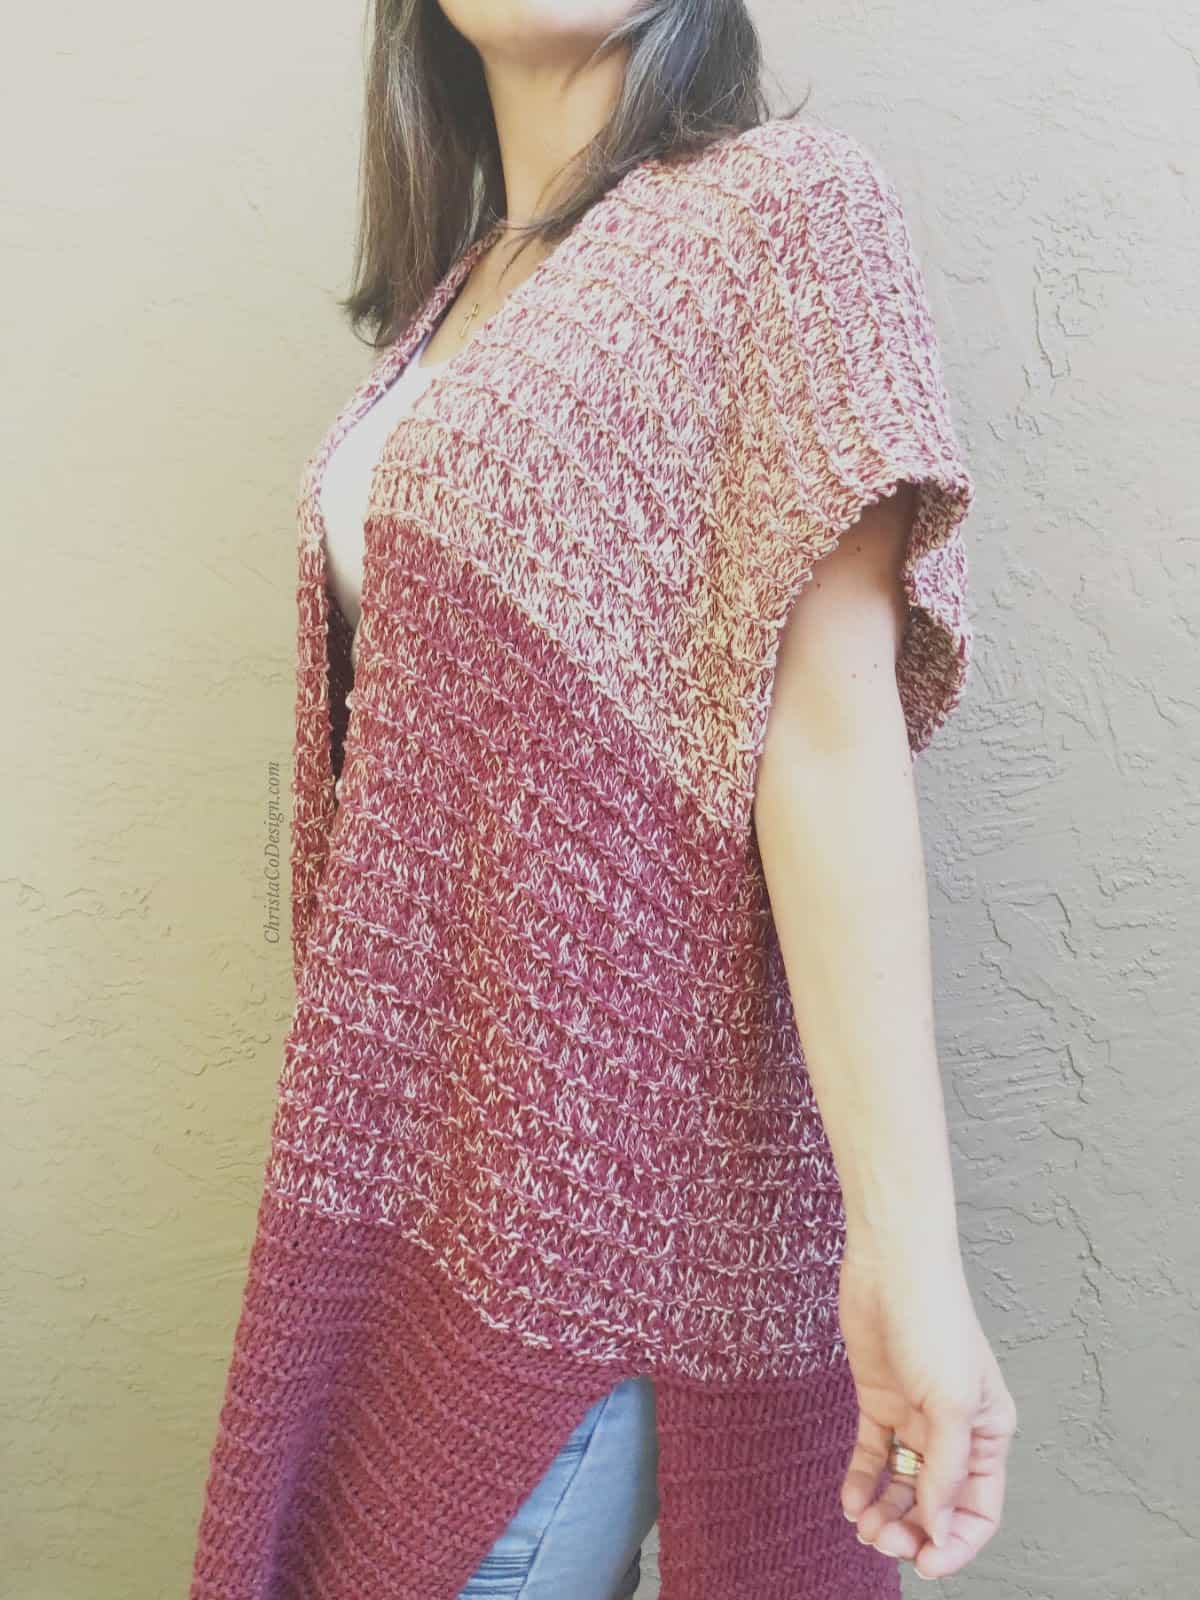 picture of woman in striped maroon ombre loose simple knit cardigan